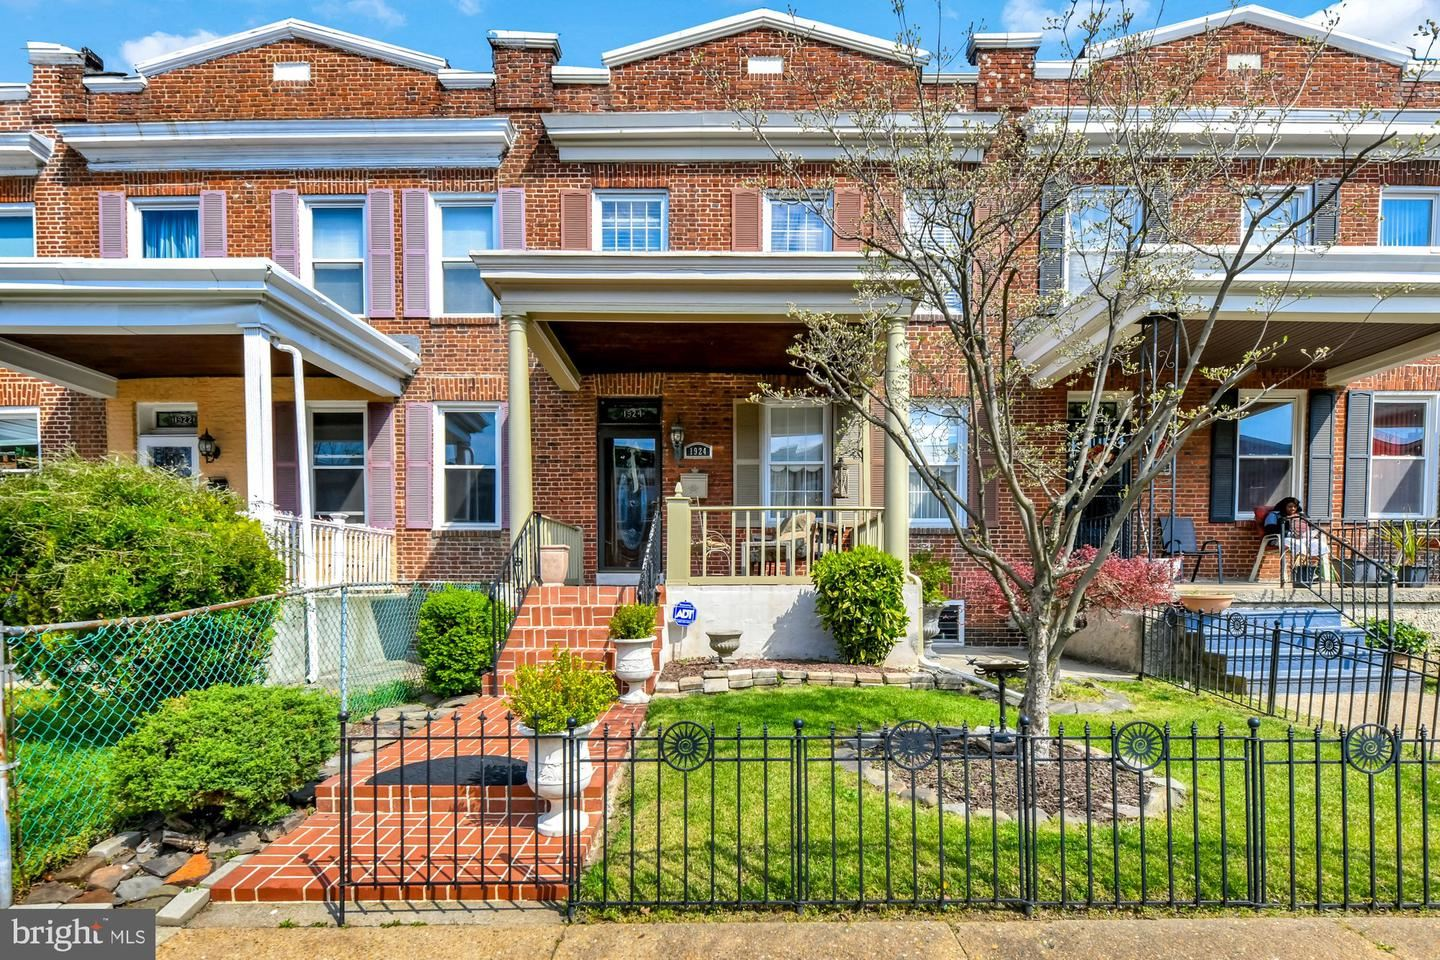 1924 E 30TH ST, Baltimore, MD 21218 - MLS#: MDBA546560